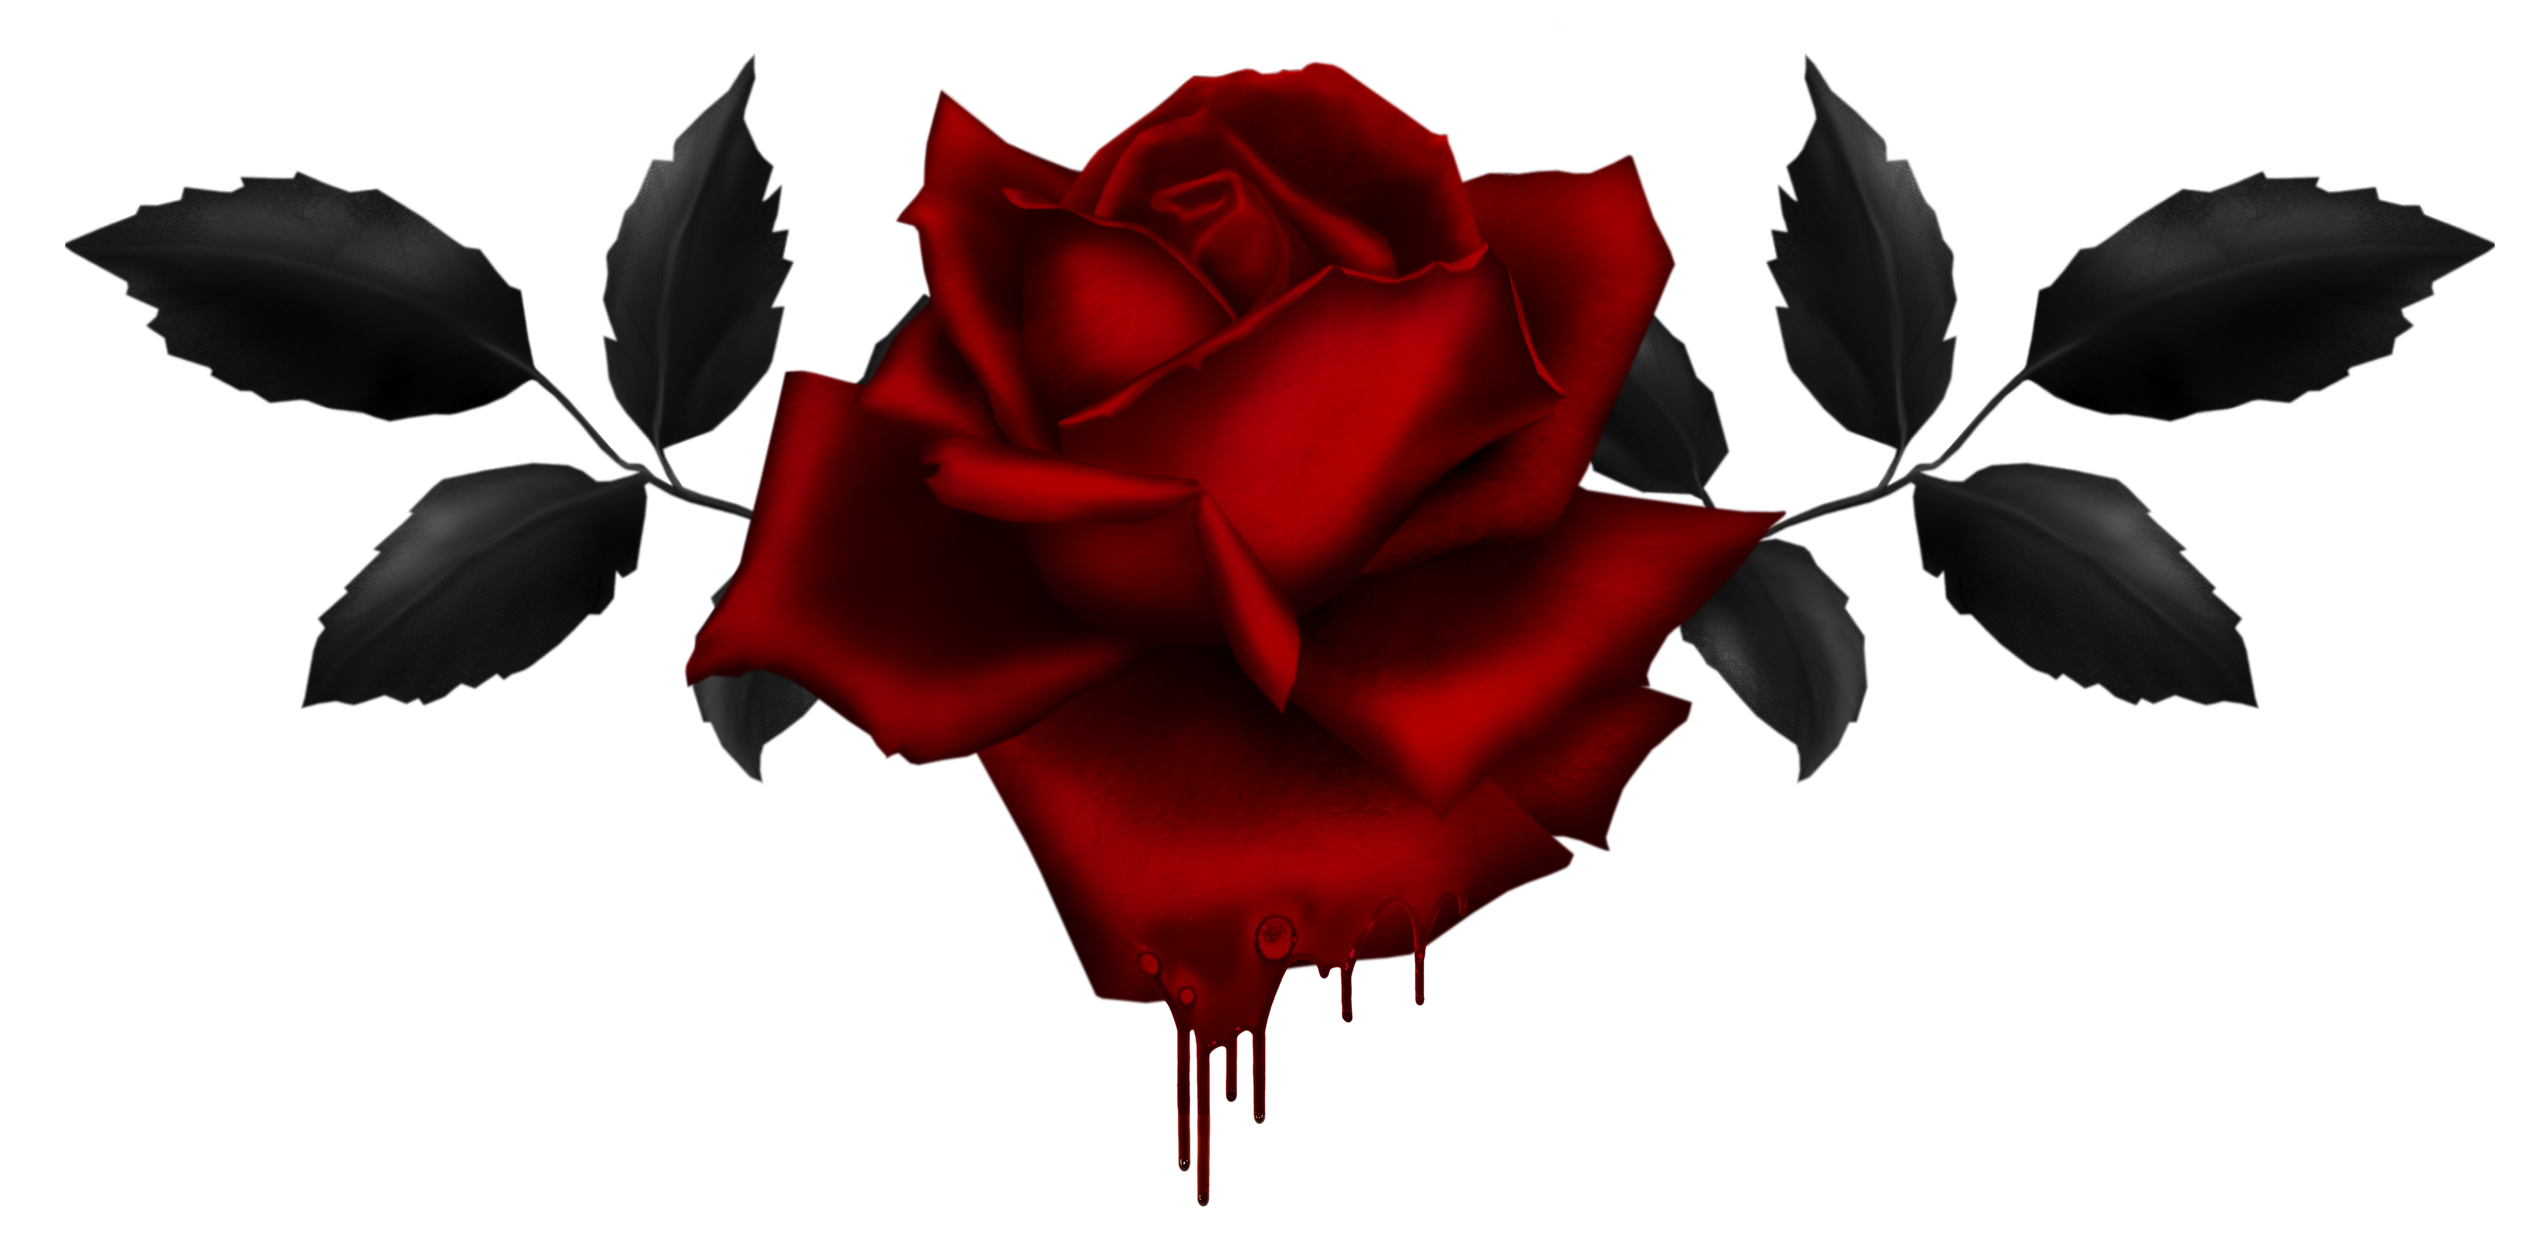 2544x1243 Dripping Drawing Rose Transparent Png Clipart Free Download